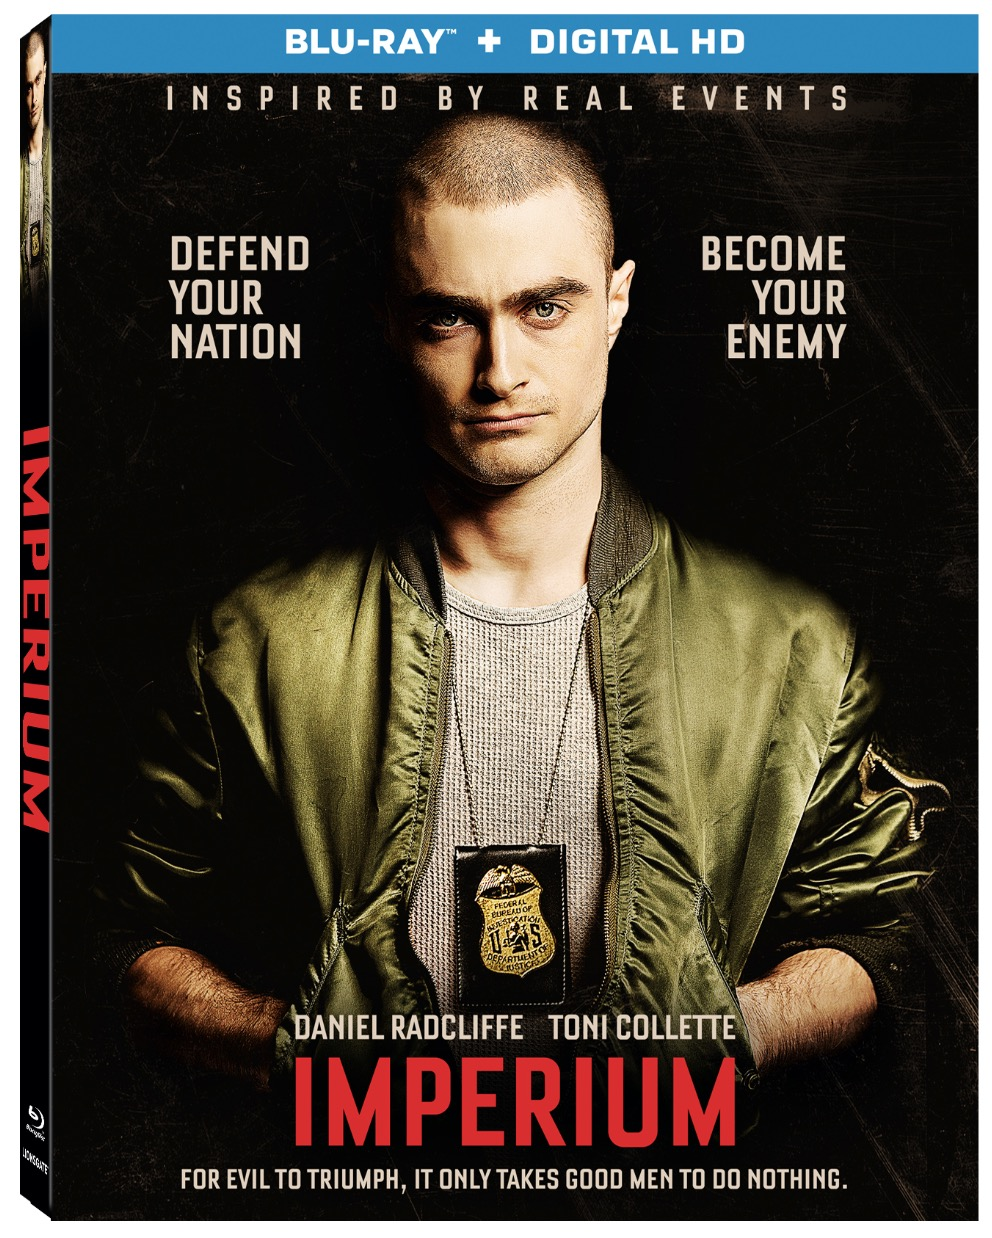 Imperium Blu-ray Review